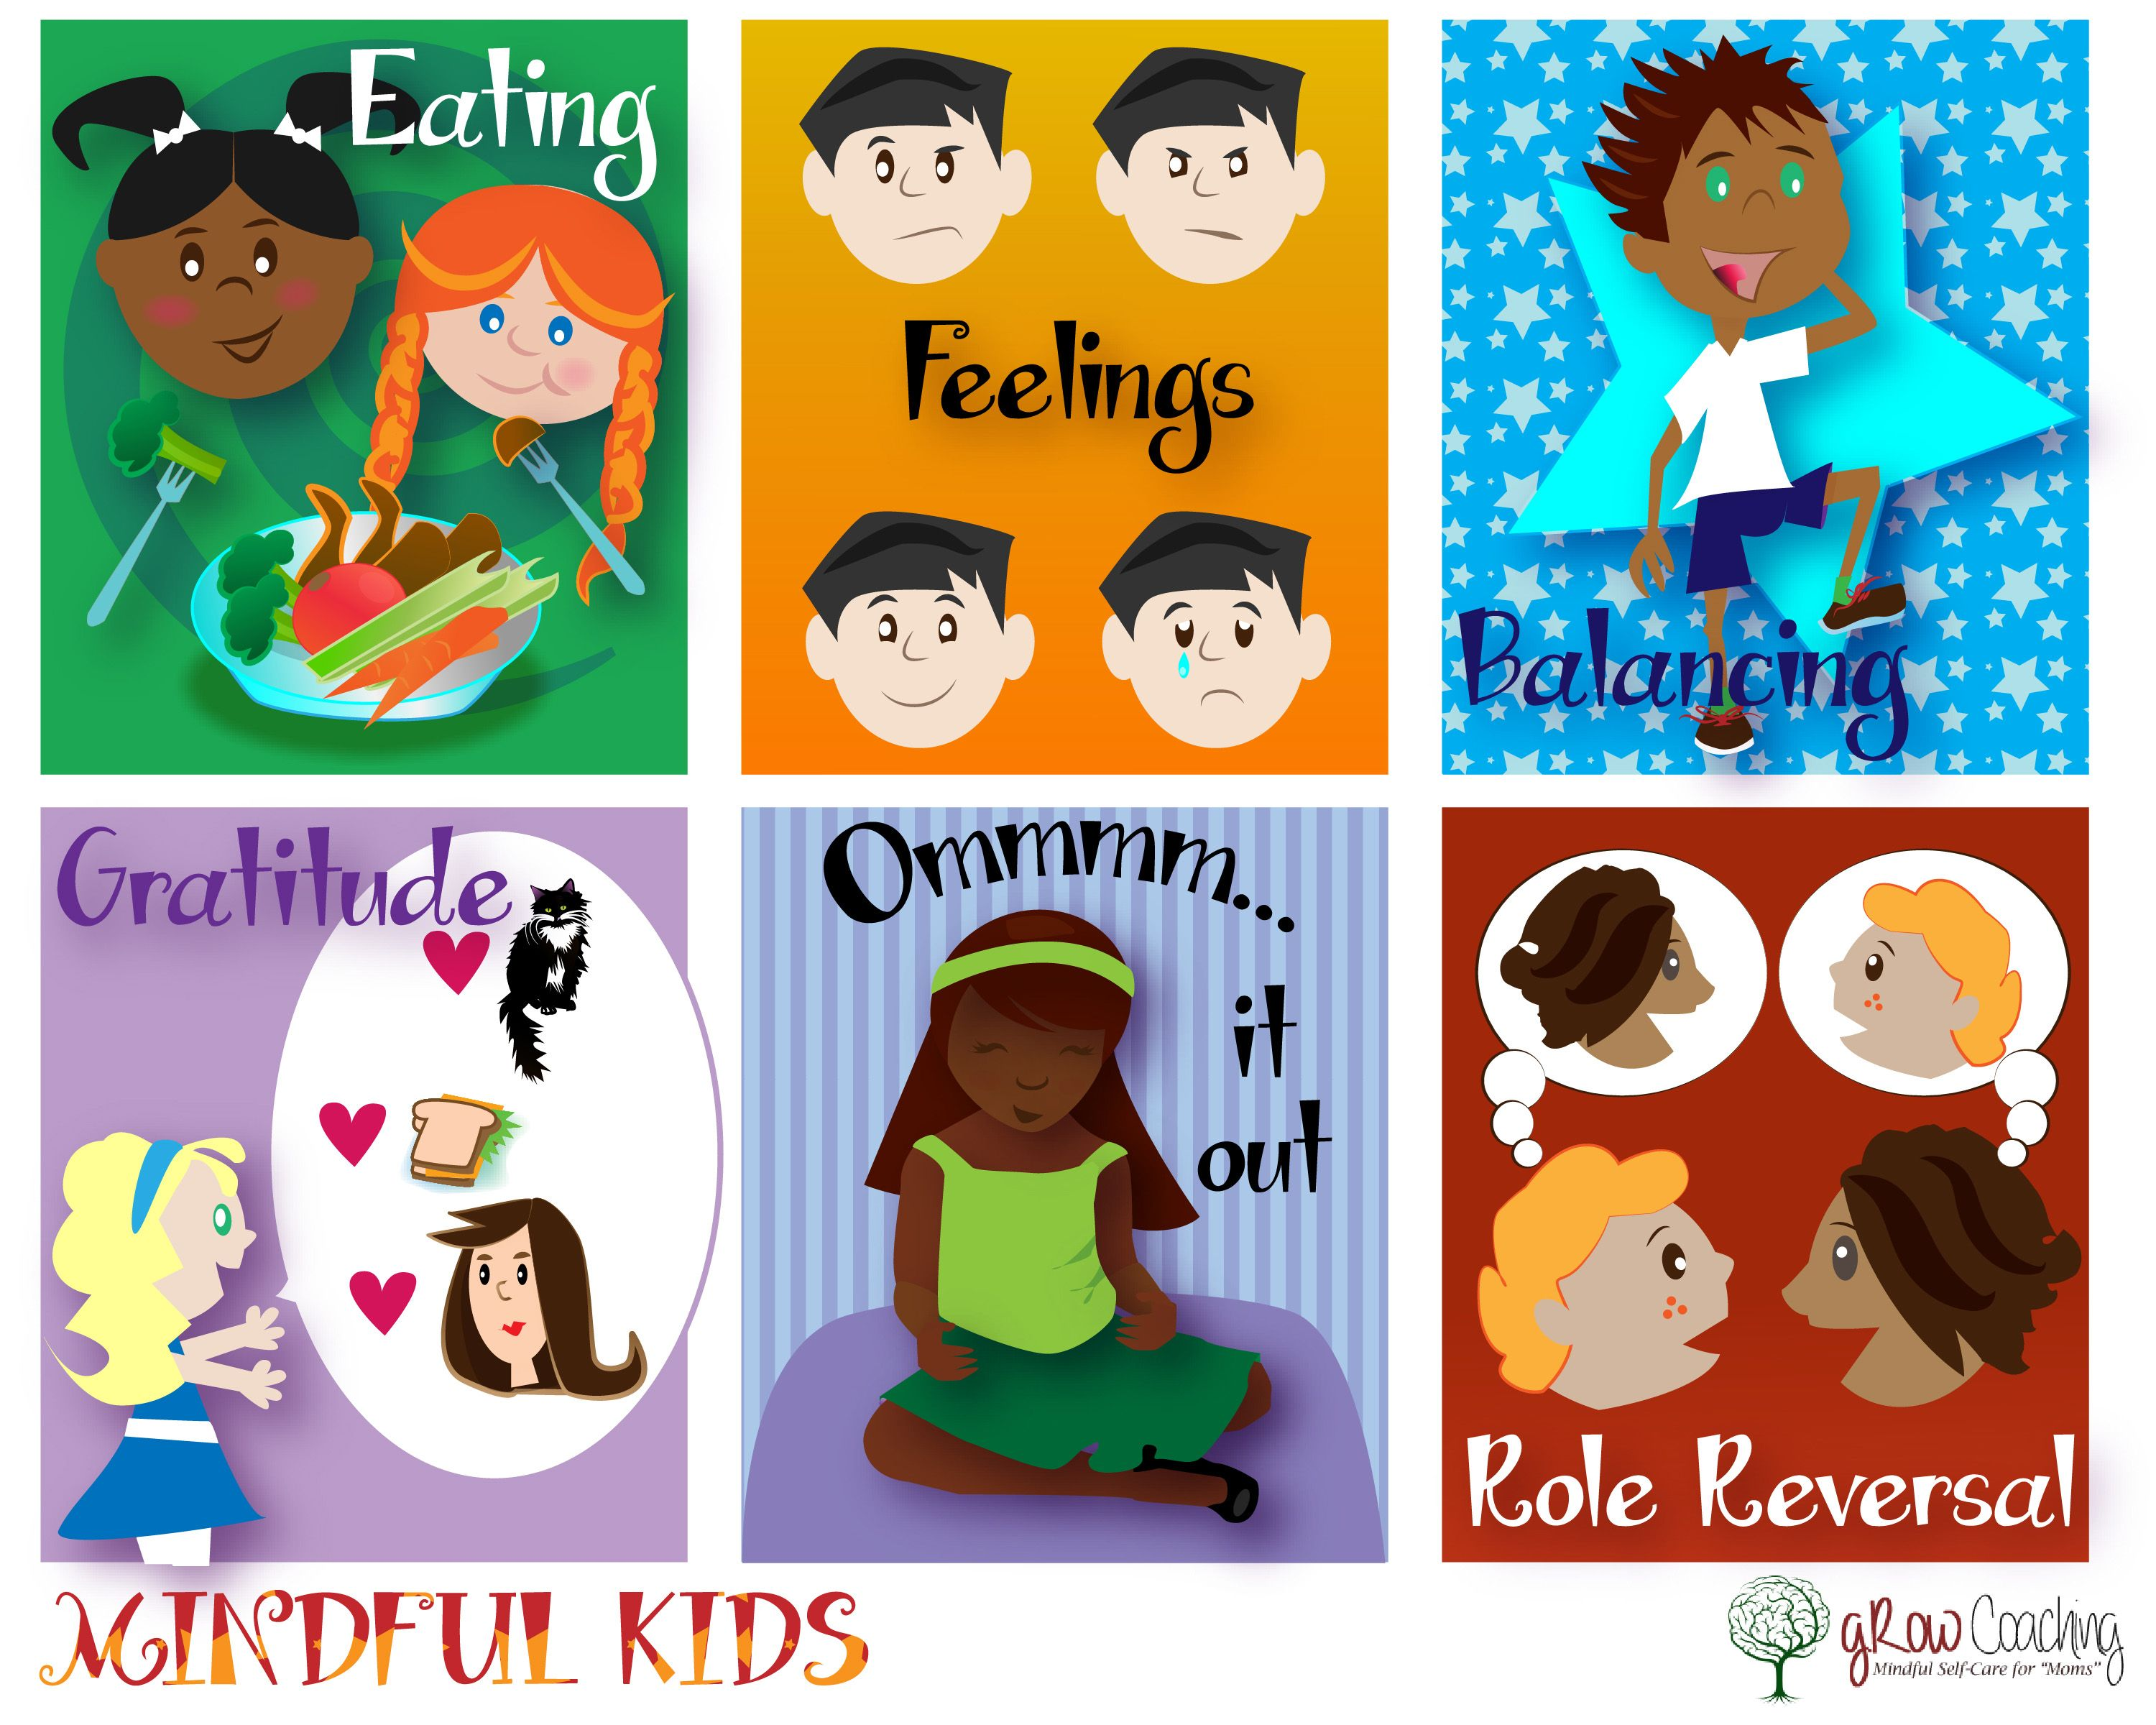 Mindful Kids 6 Games To Teach Your Kids Compassion Self